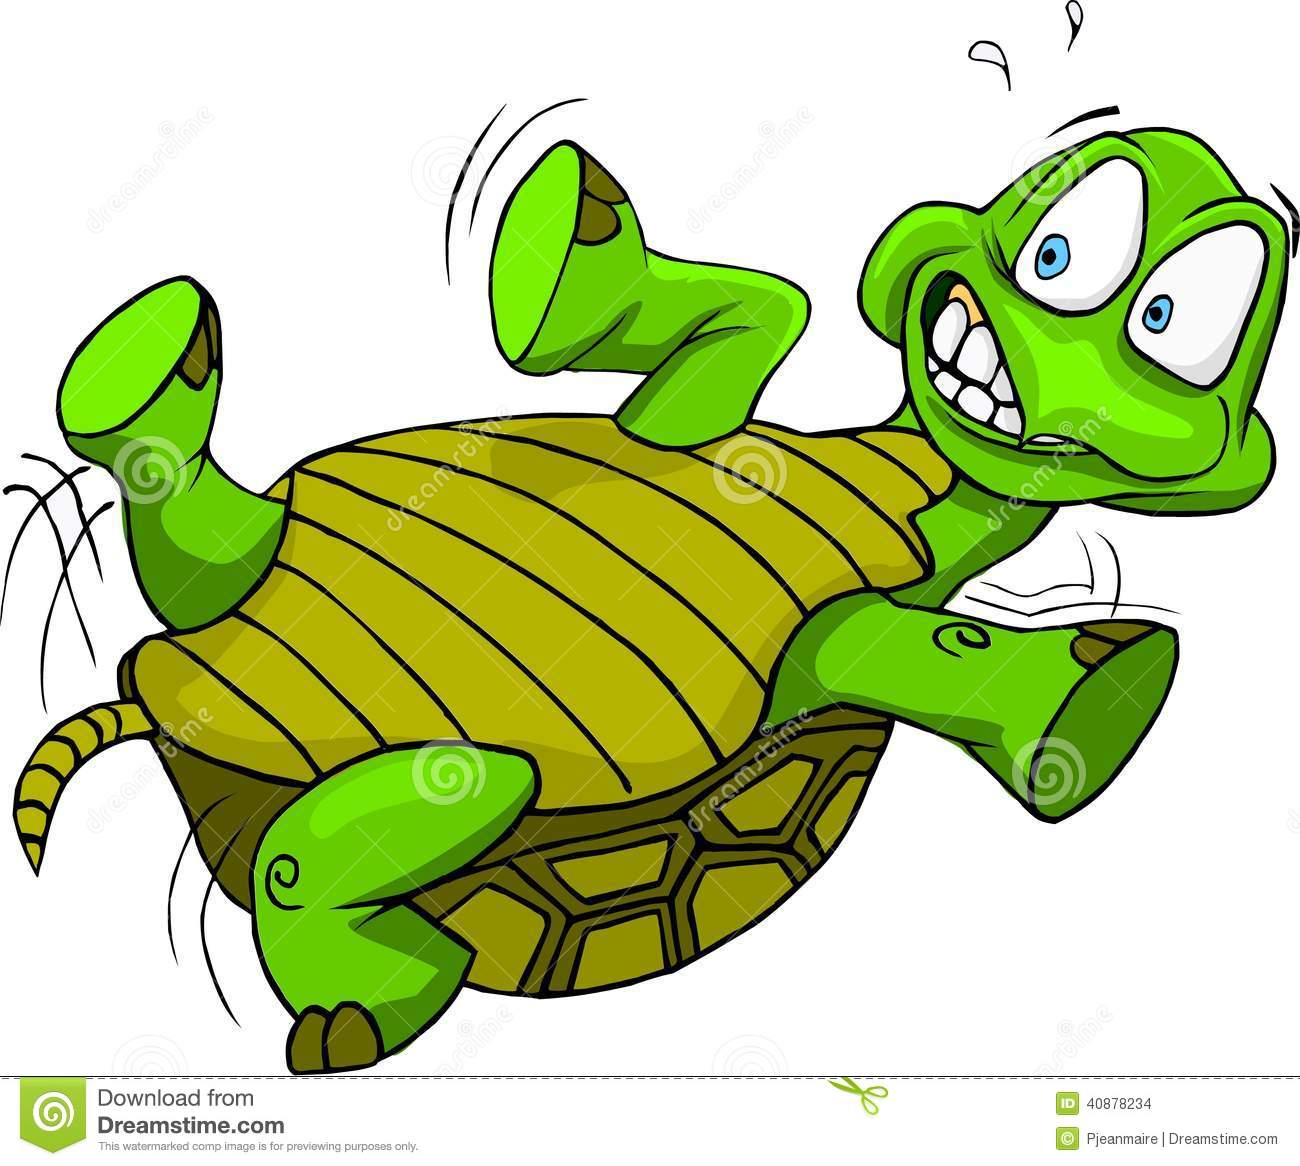 Gallery For > Turtle Turned Over Clipart.